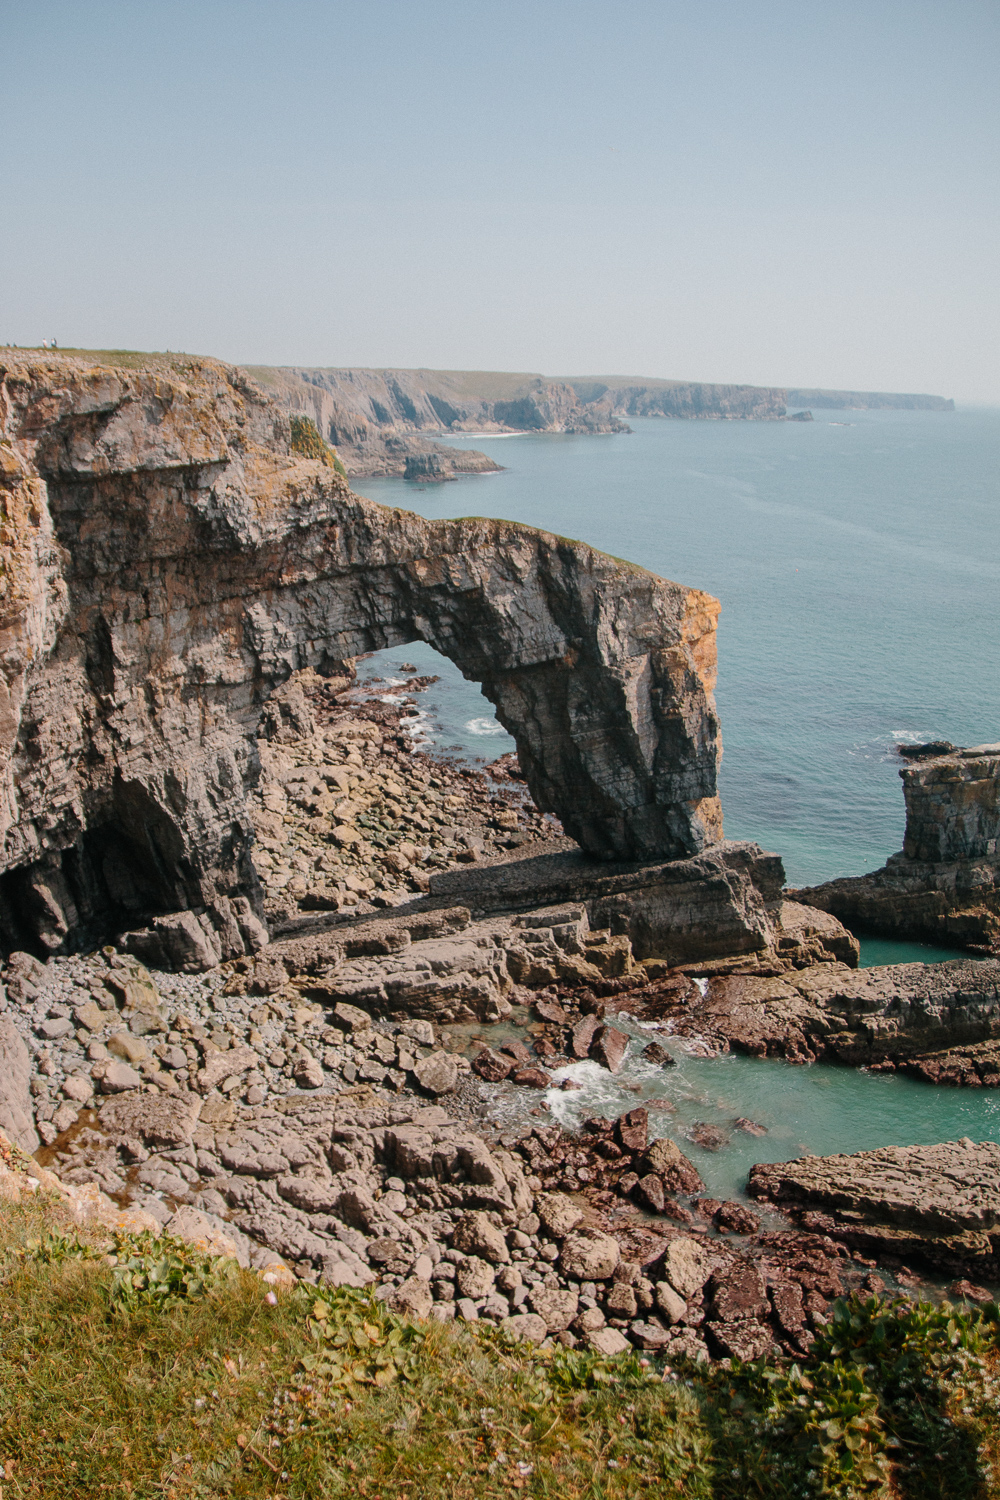 Green Bridge of Wales in Pembrokeshire Coastal Walk